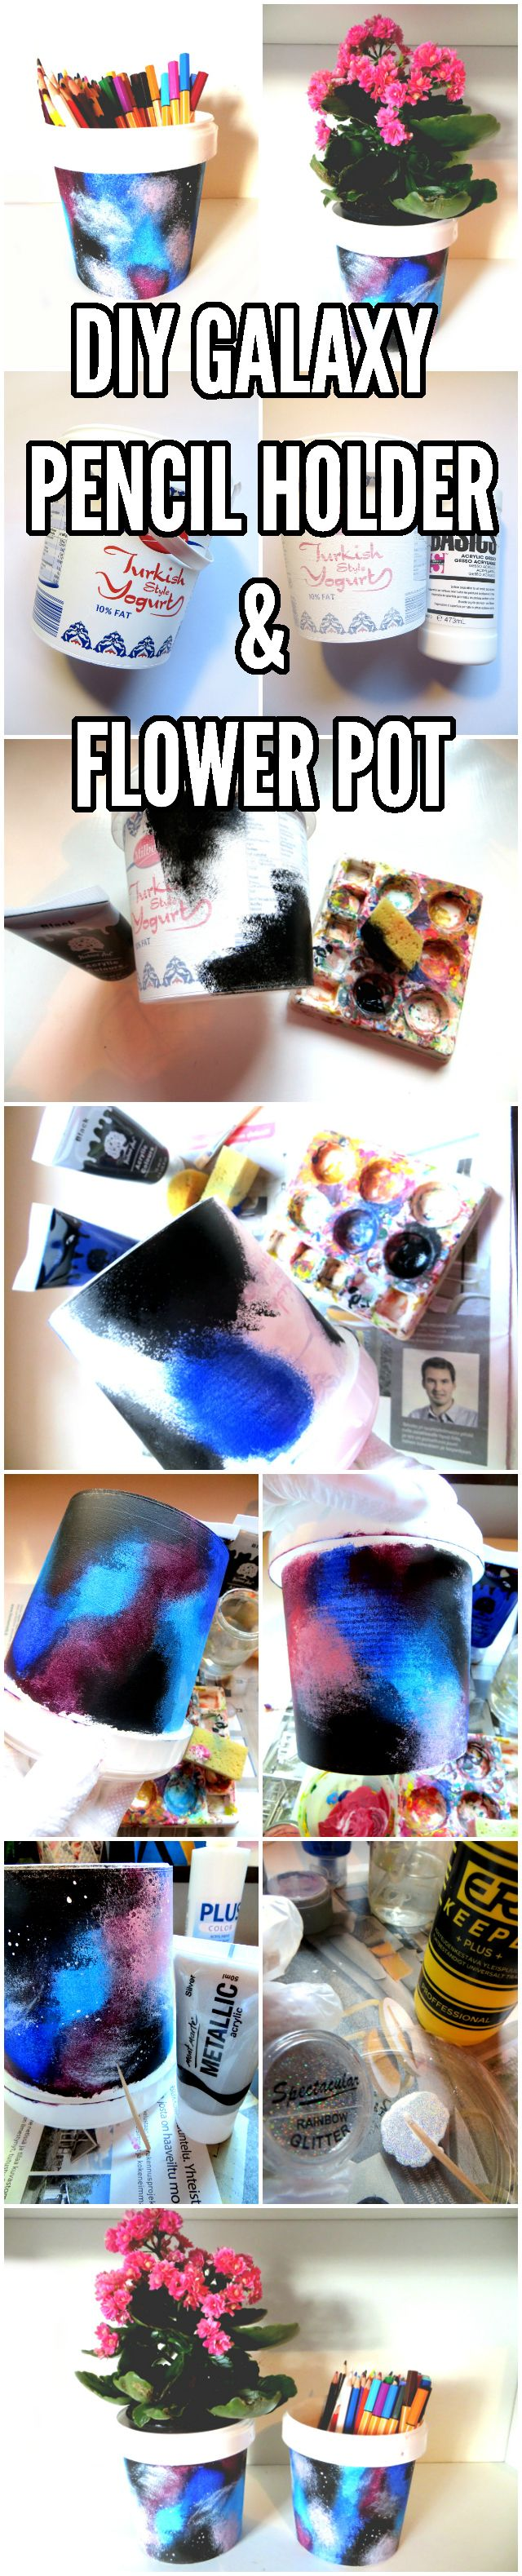 DIY galaxy home decor and desk organization recycled craft. How to make a galaxy flower pot or pencil holder by recycling yogurt containers.